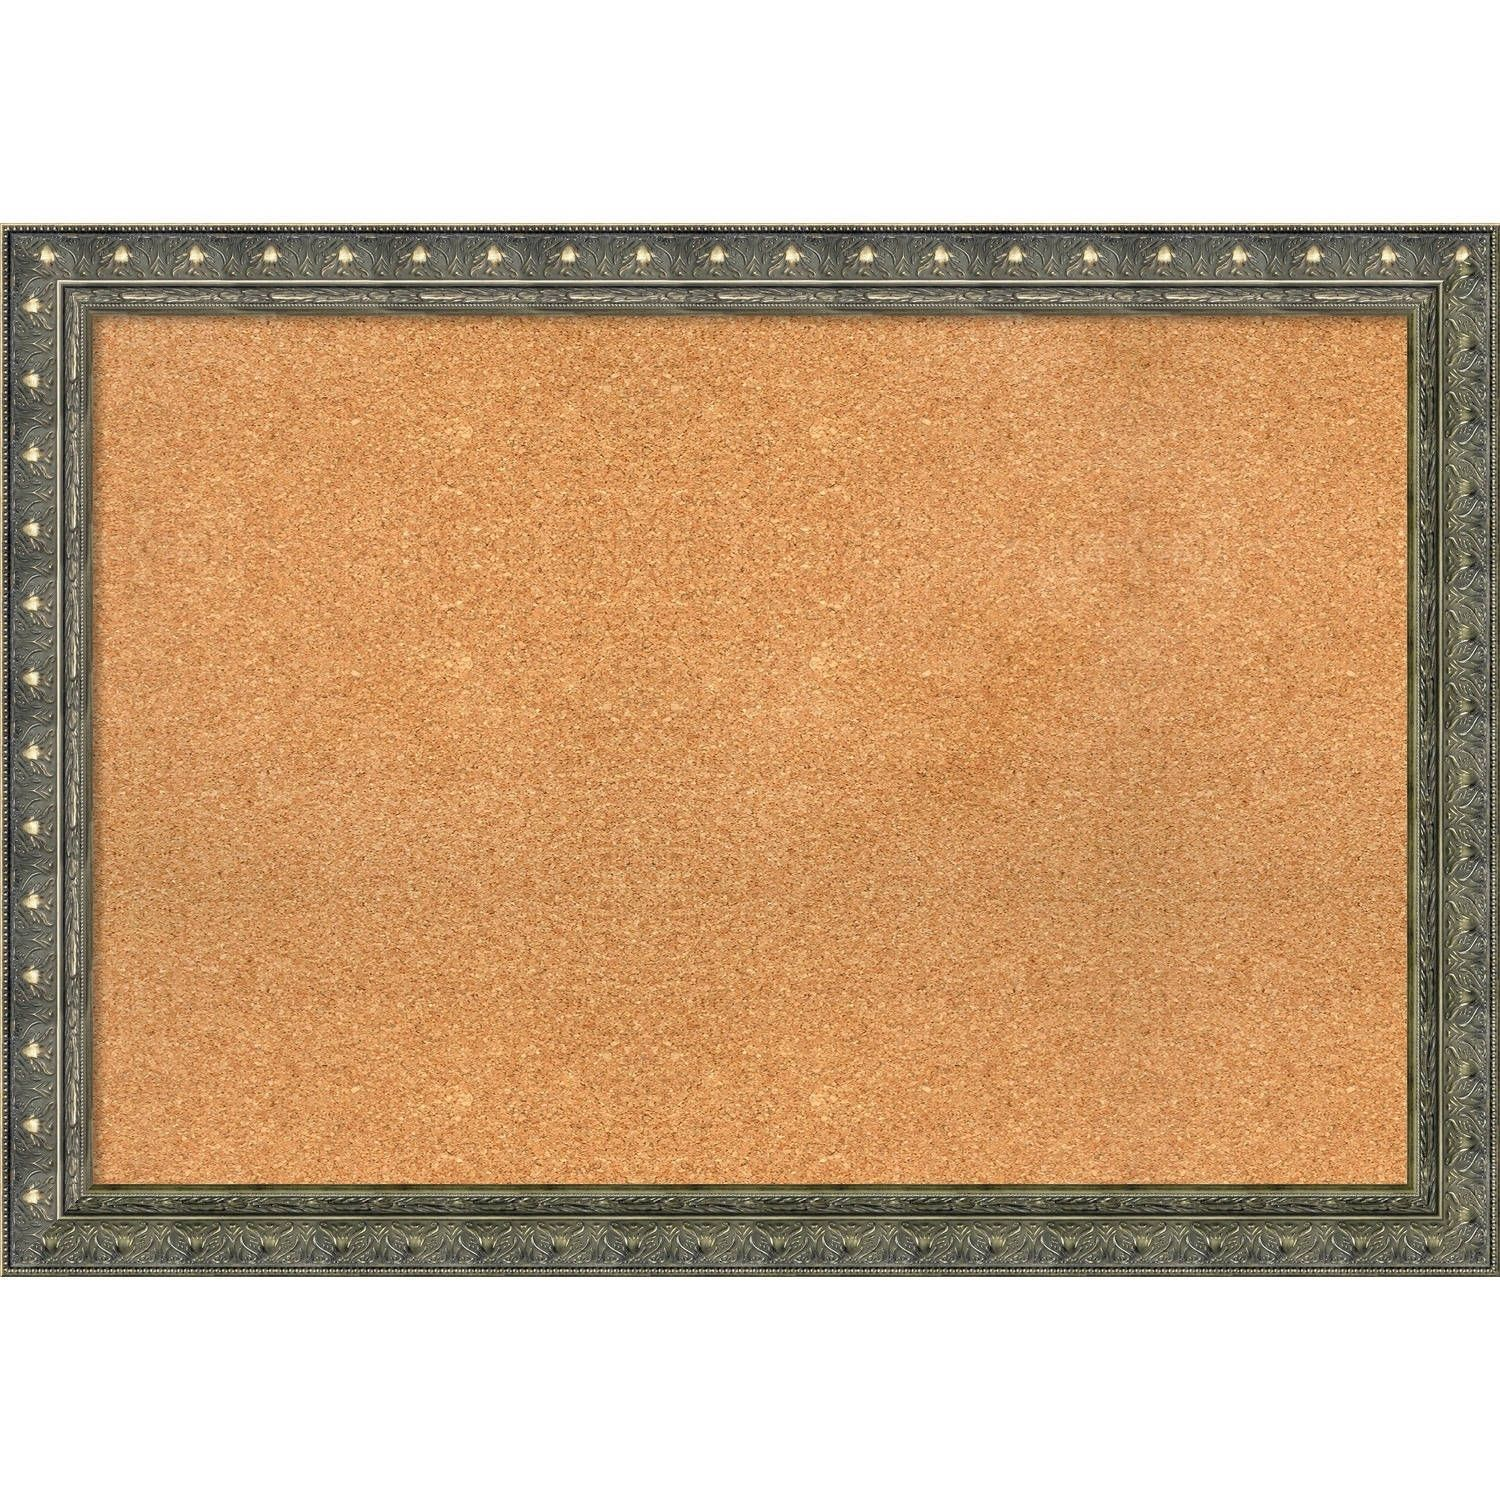 Amanti Art Framed Cork Board, Barcelona Champagne (Extra Large